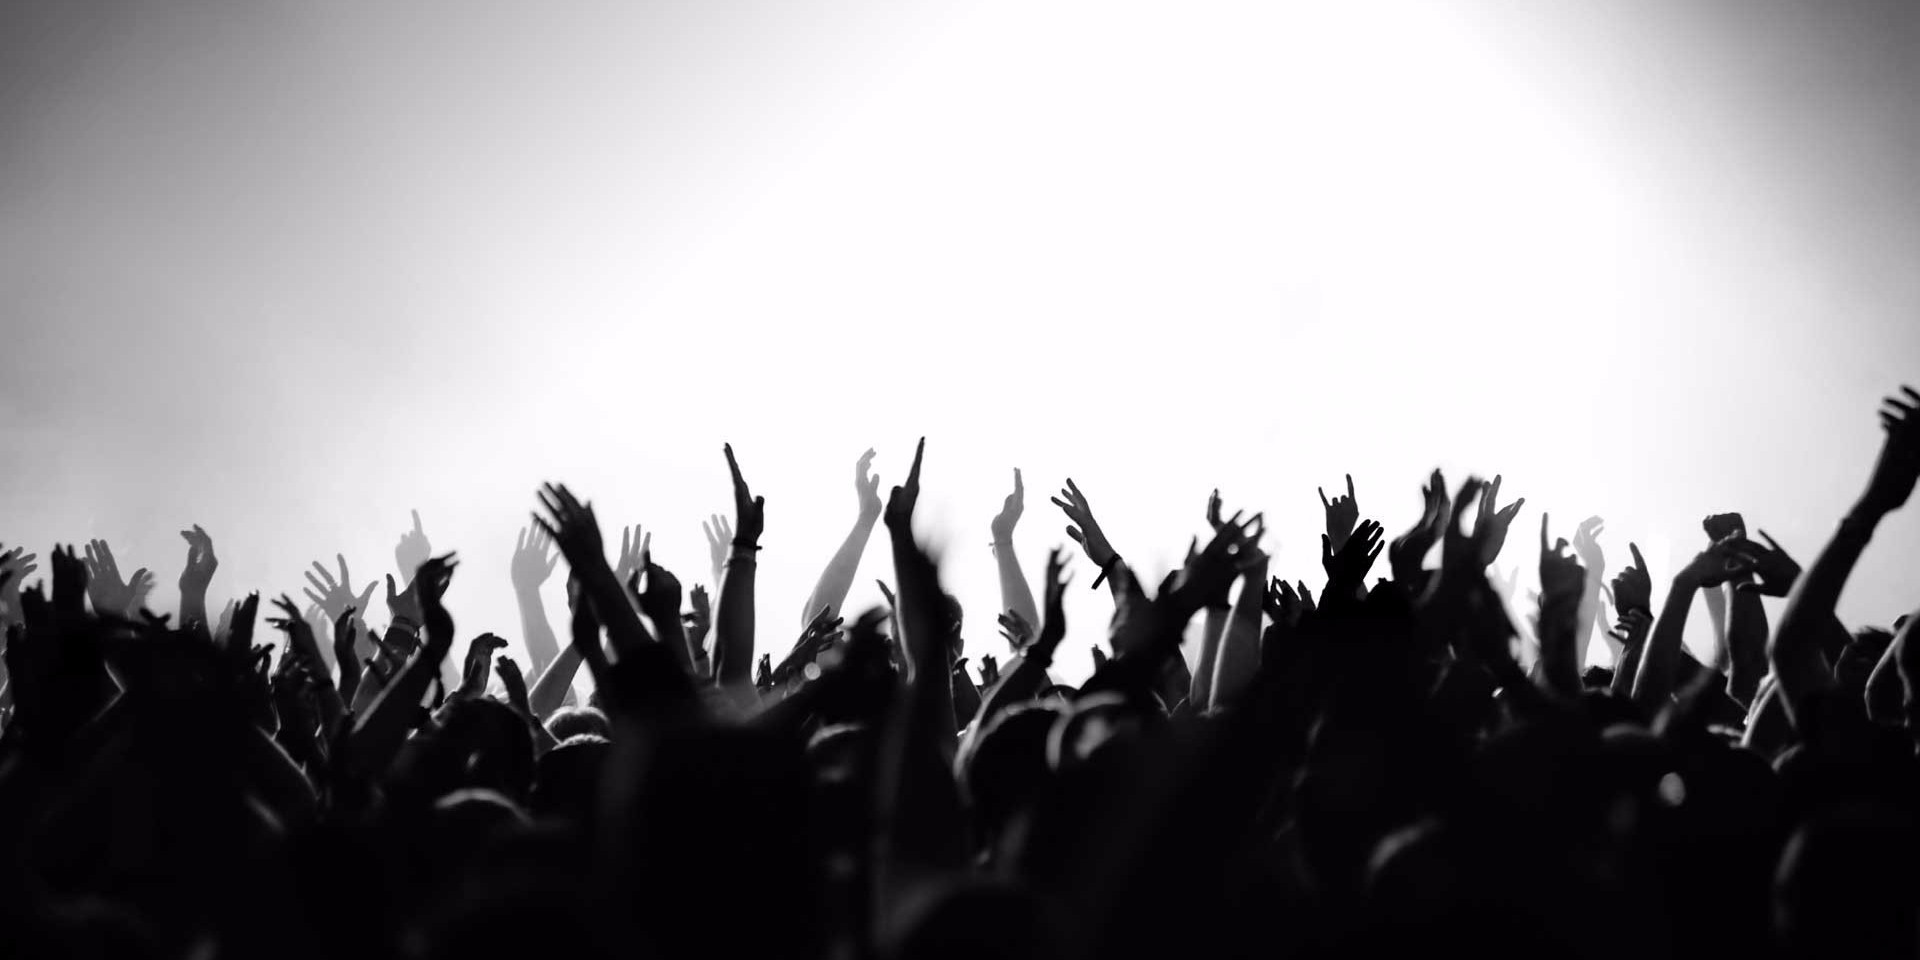 According to this report, live music is serious business in Singapore